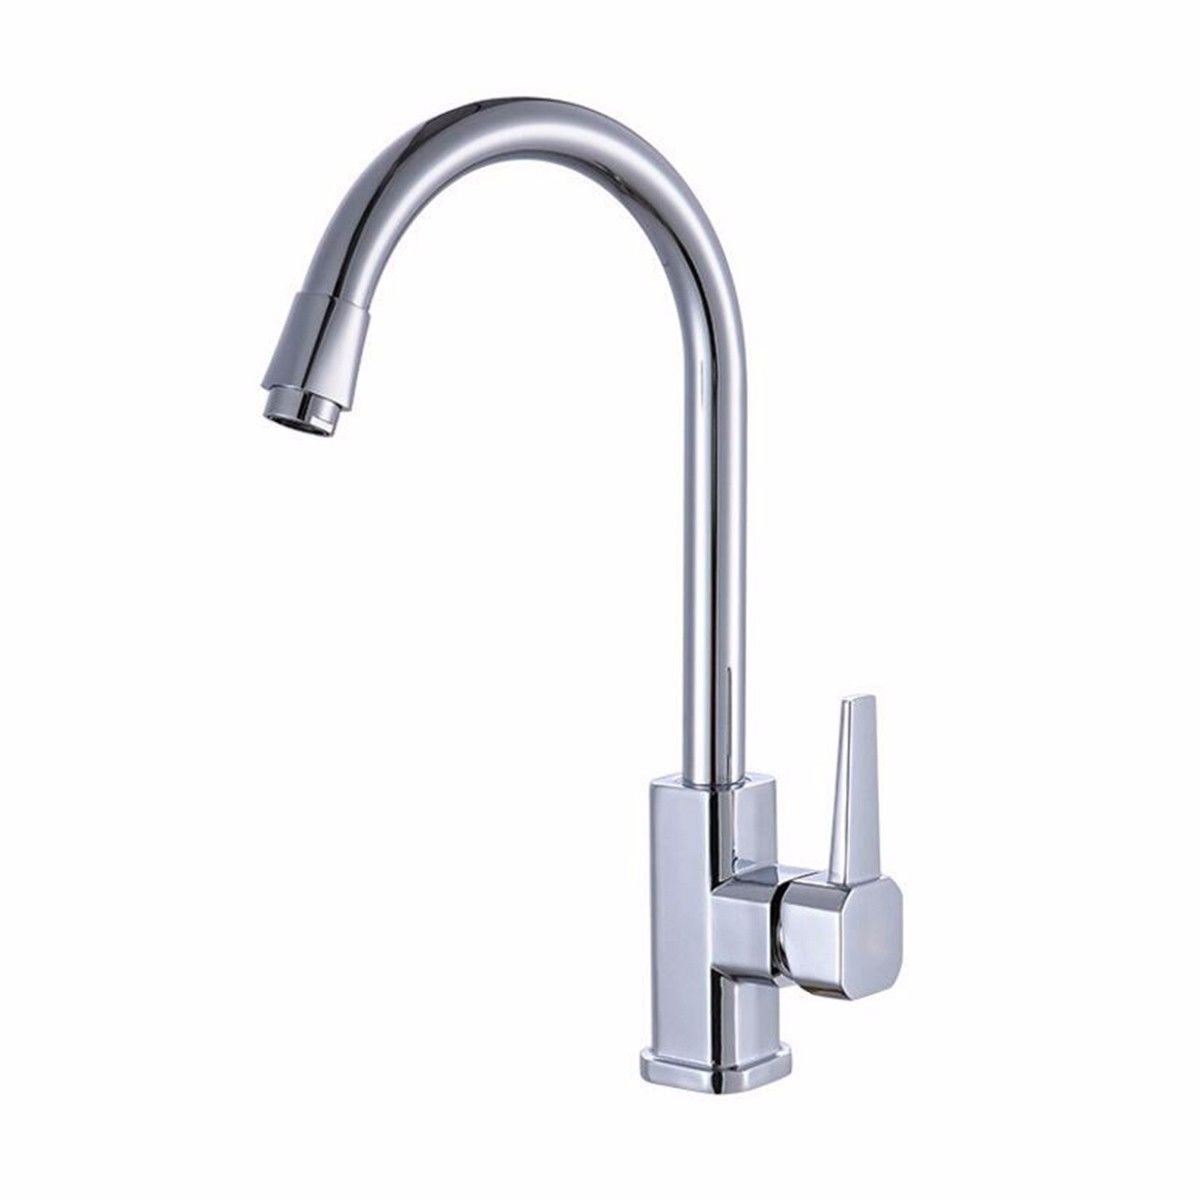 XPYFaucet Faucet Tap Taps Square octagonal kitchen sink hot and cold sink copper can be redated